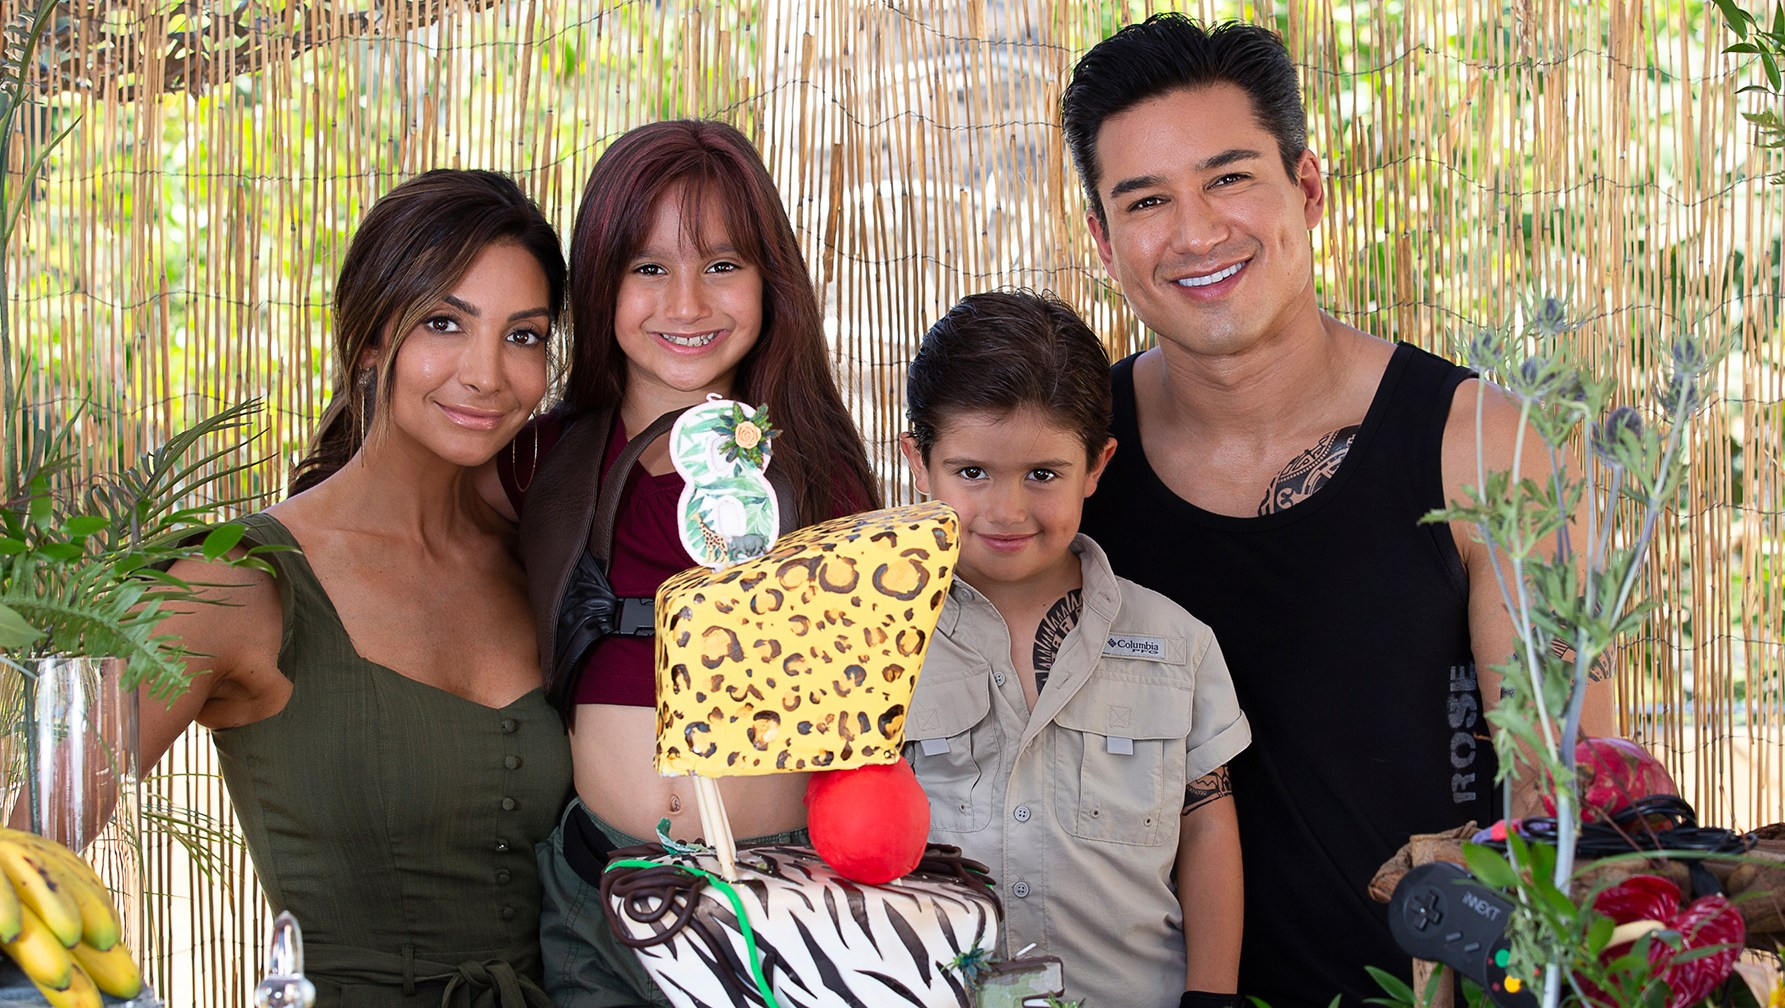 mario lopez childrens birthday party